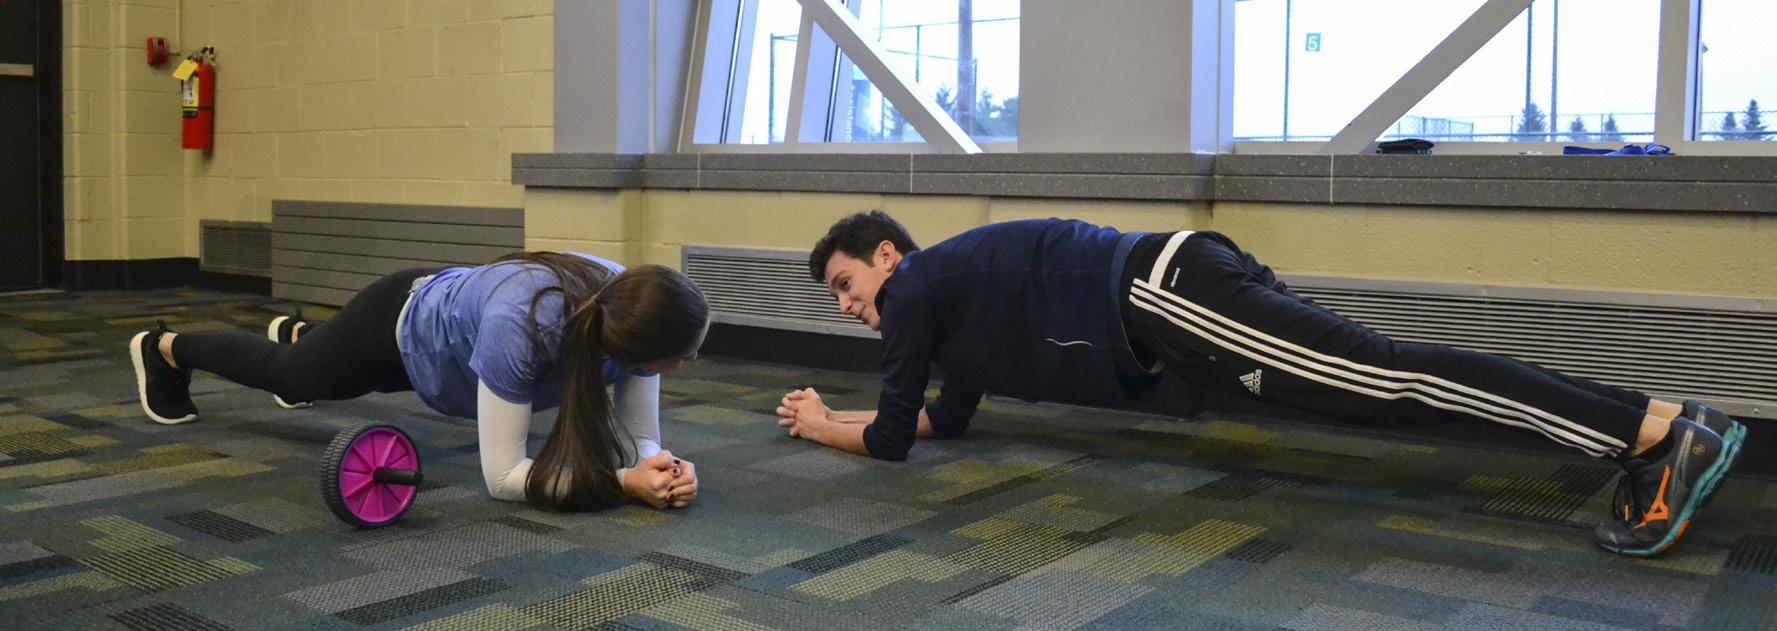 Club leaders Maggie Leins and Frank Suchy work on their core stability by doing planks. PHOTO BY MIRANDA MALEC|STAFF PHOTOGRAPHER